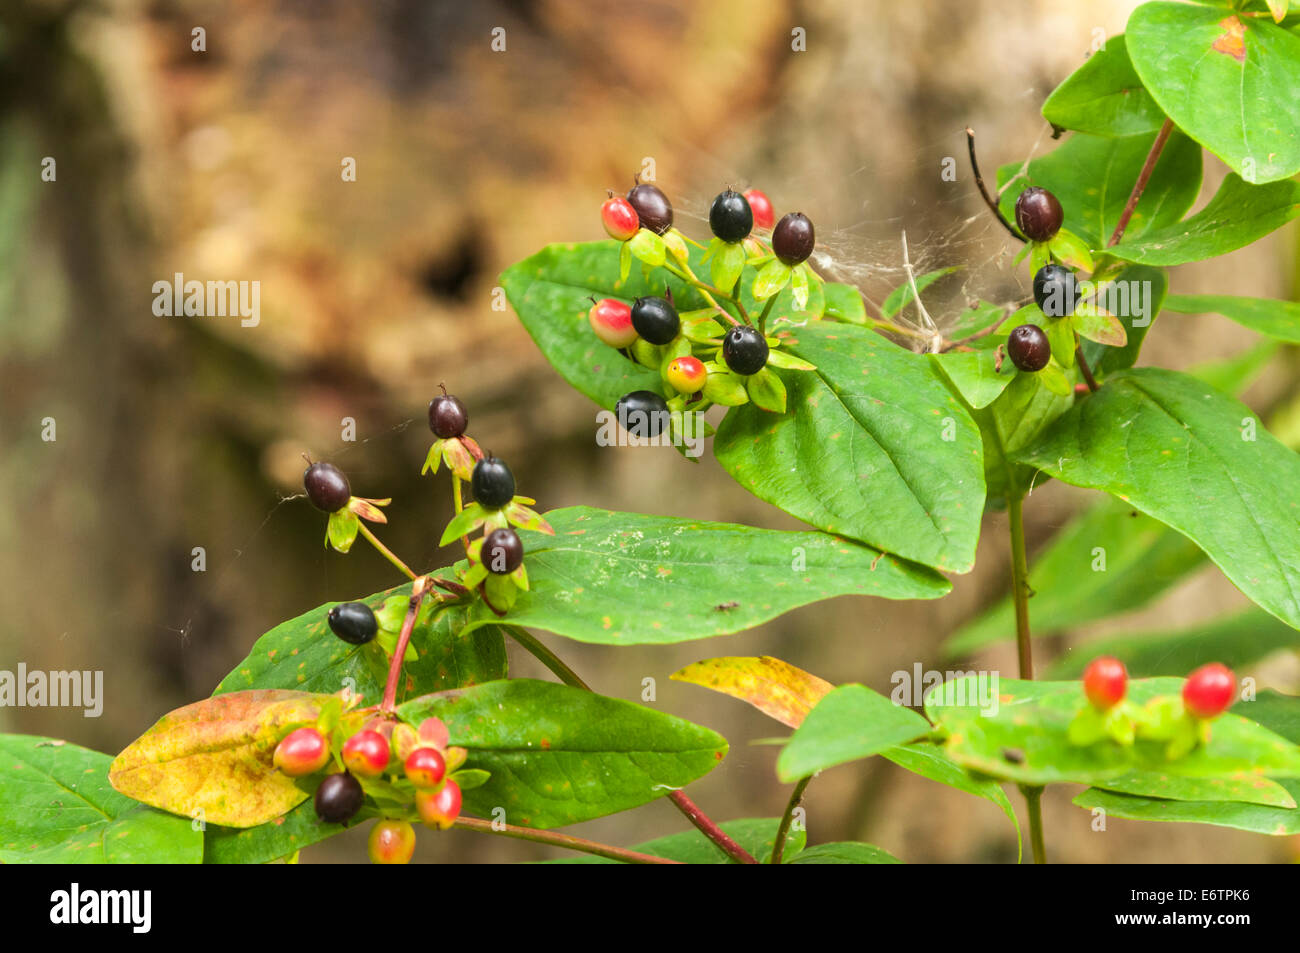 Deadly Nightshade Plant Stock Photos Deadly Nightshade Plant